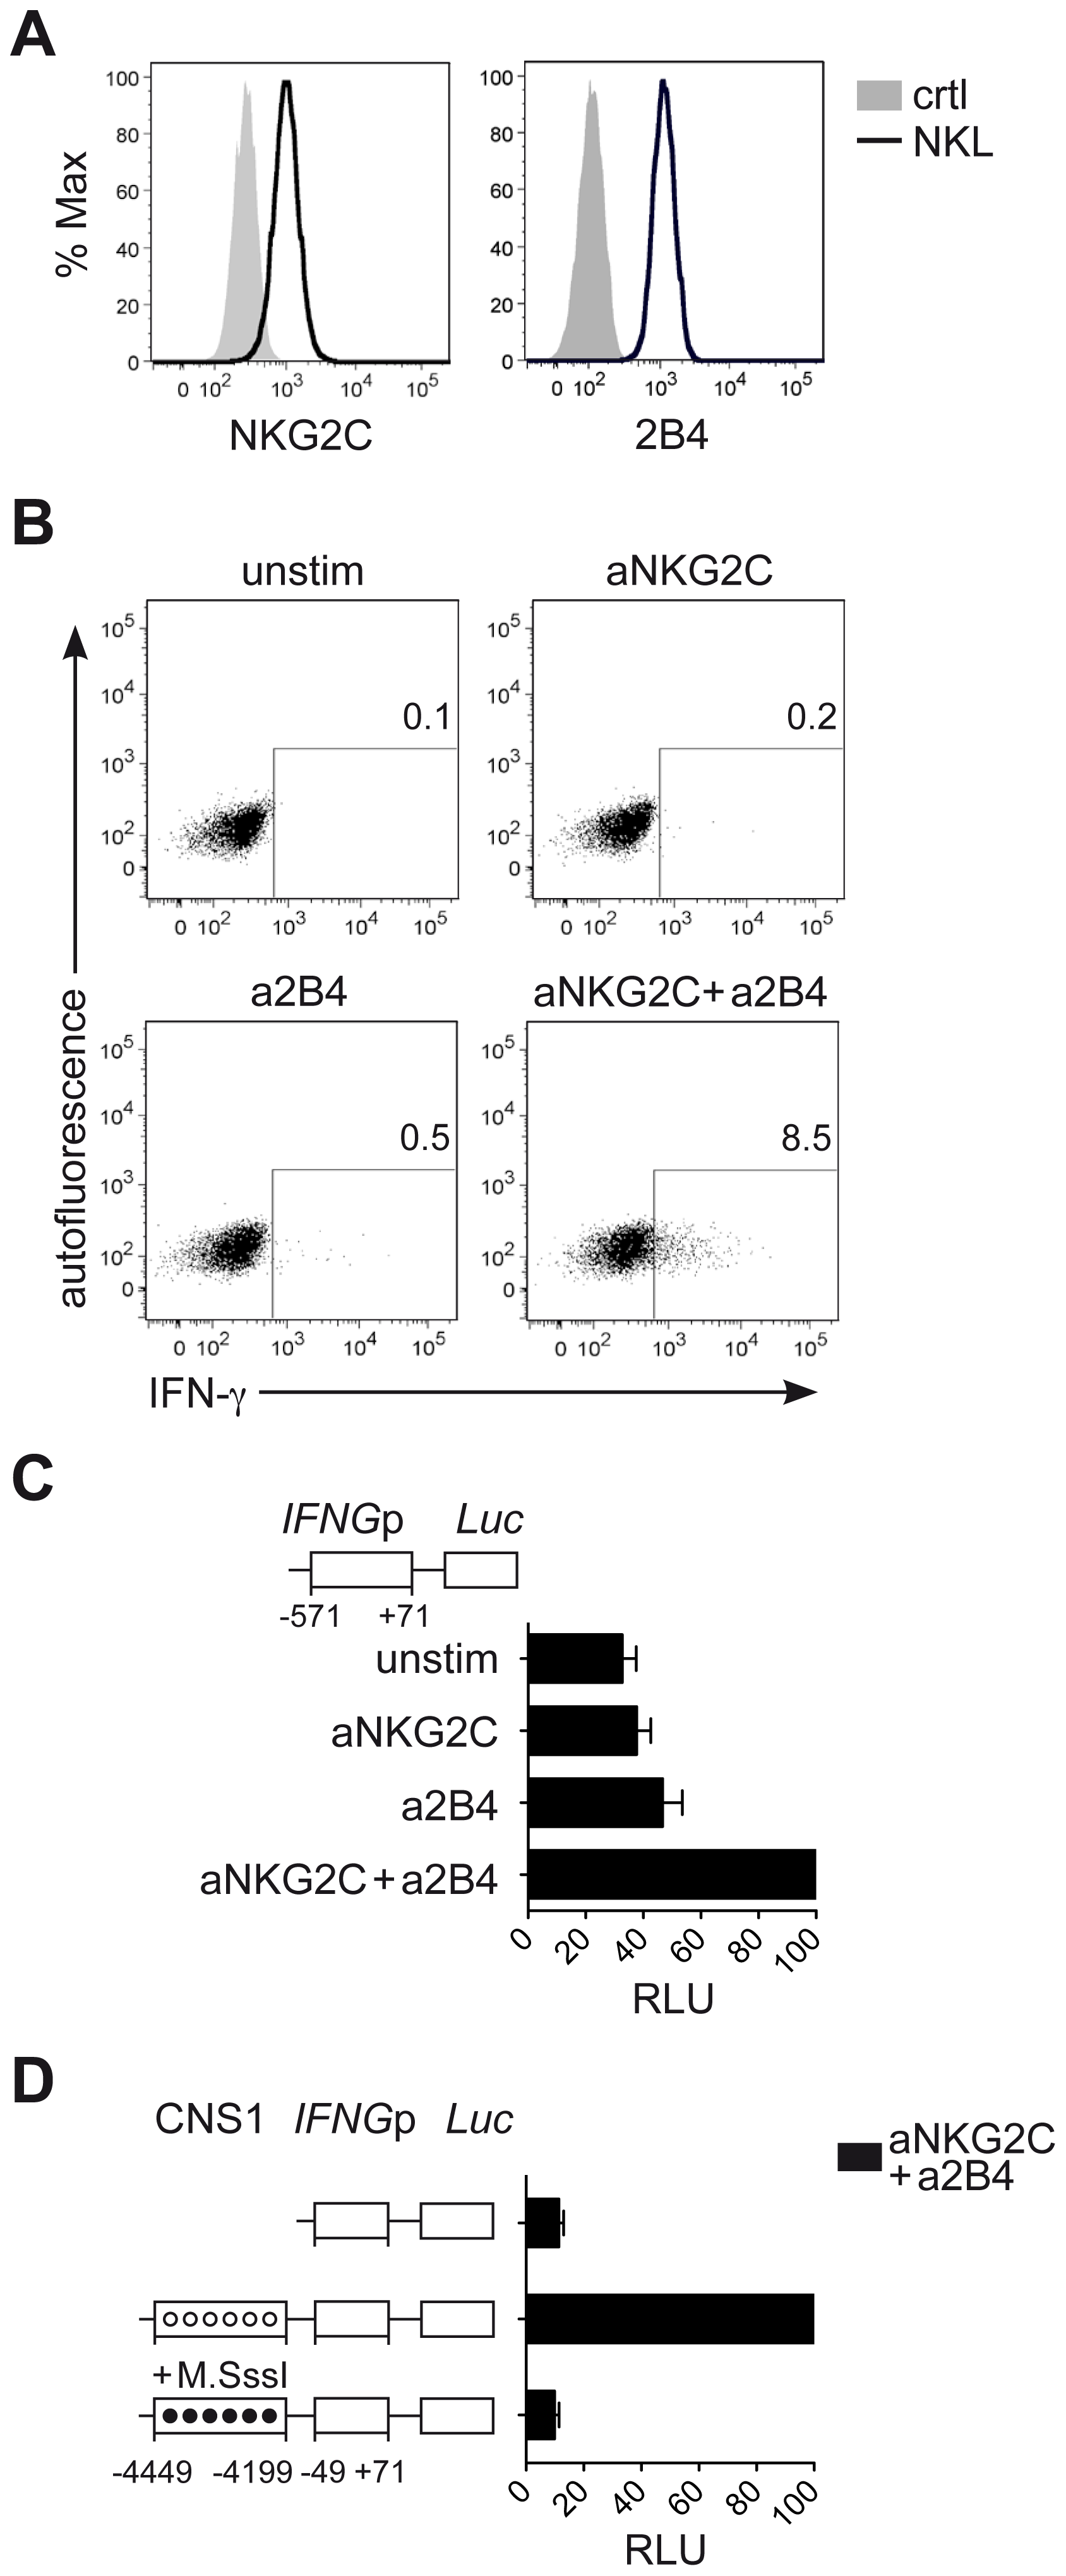 CNS1 accessibility regulates <i>IFNG</i> transcriptional activity induced by NKG2C engagement.